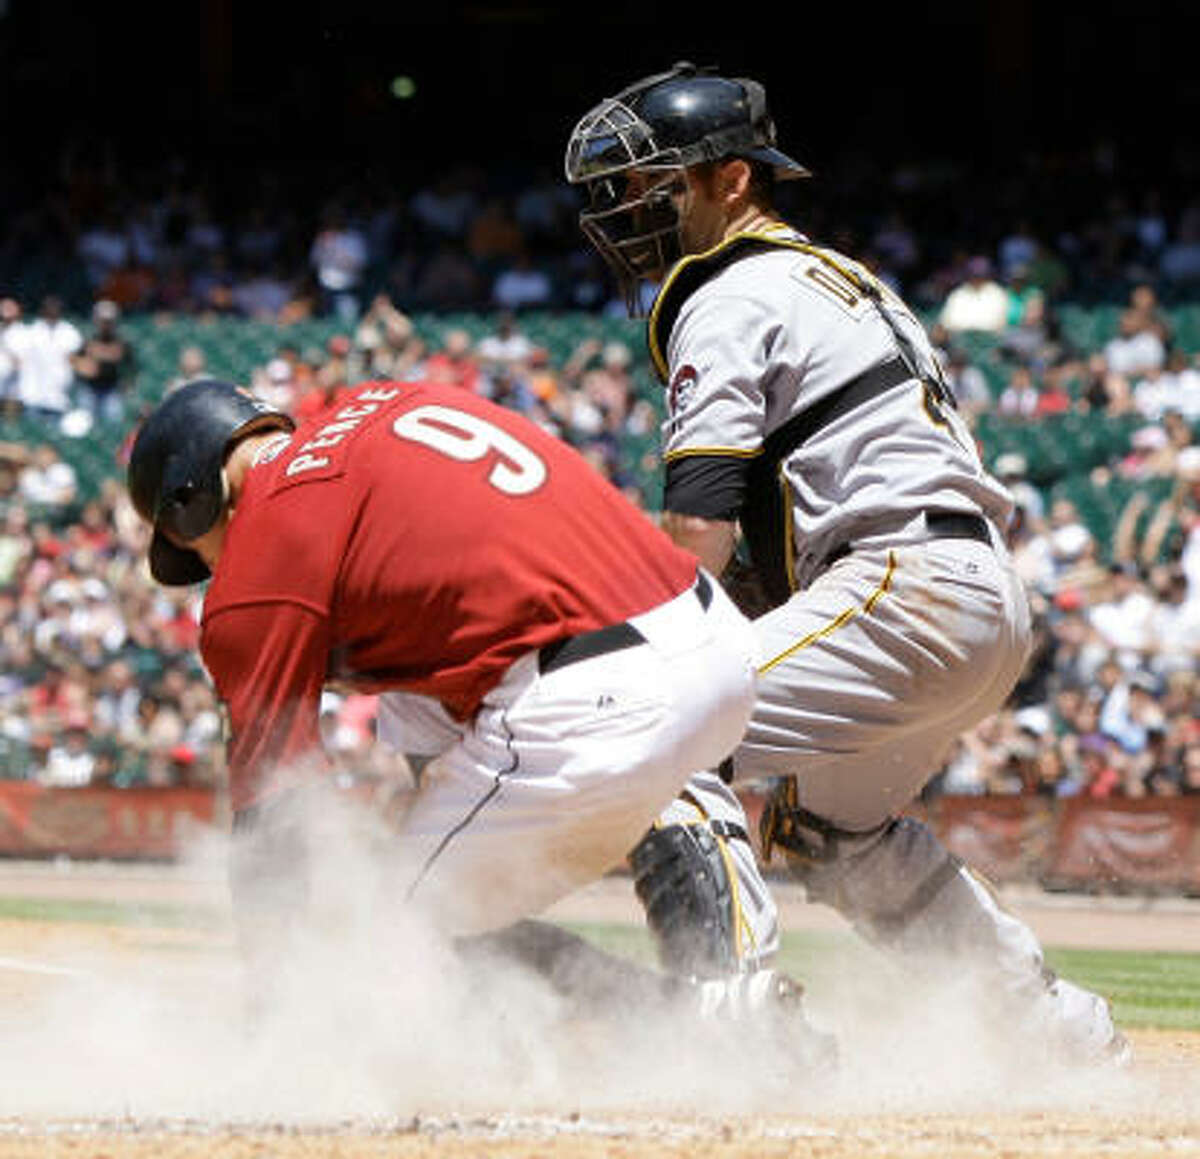 Hunter Pence scores ahead of the tag of Pittsburgh catcher Ryan Doumit on a Pedro Feliz single.